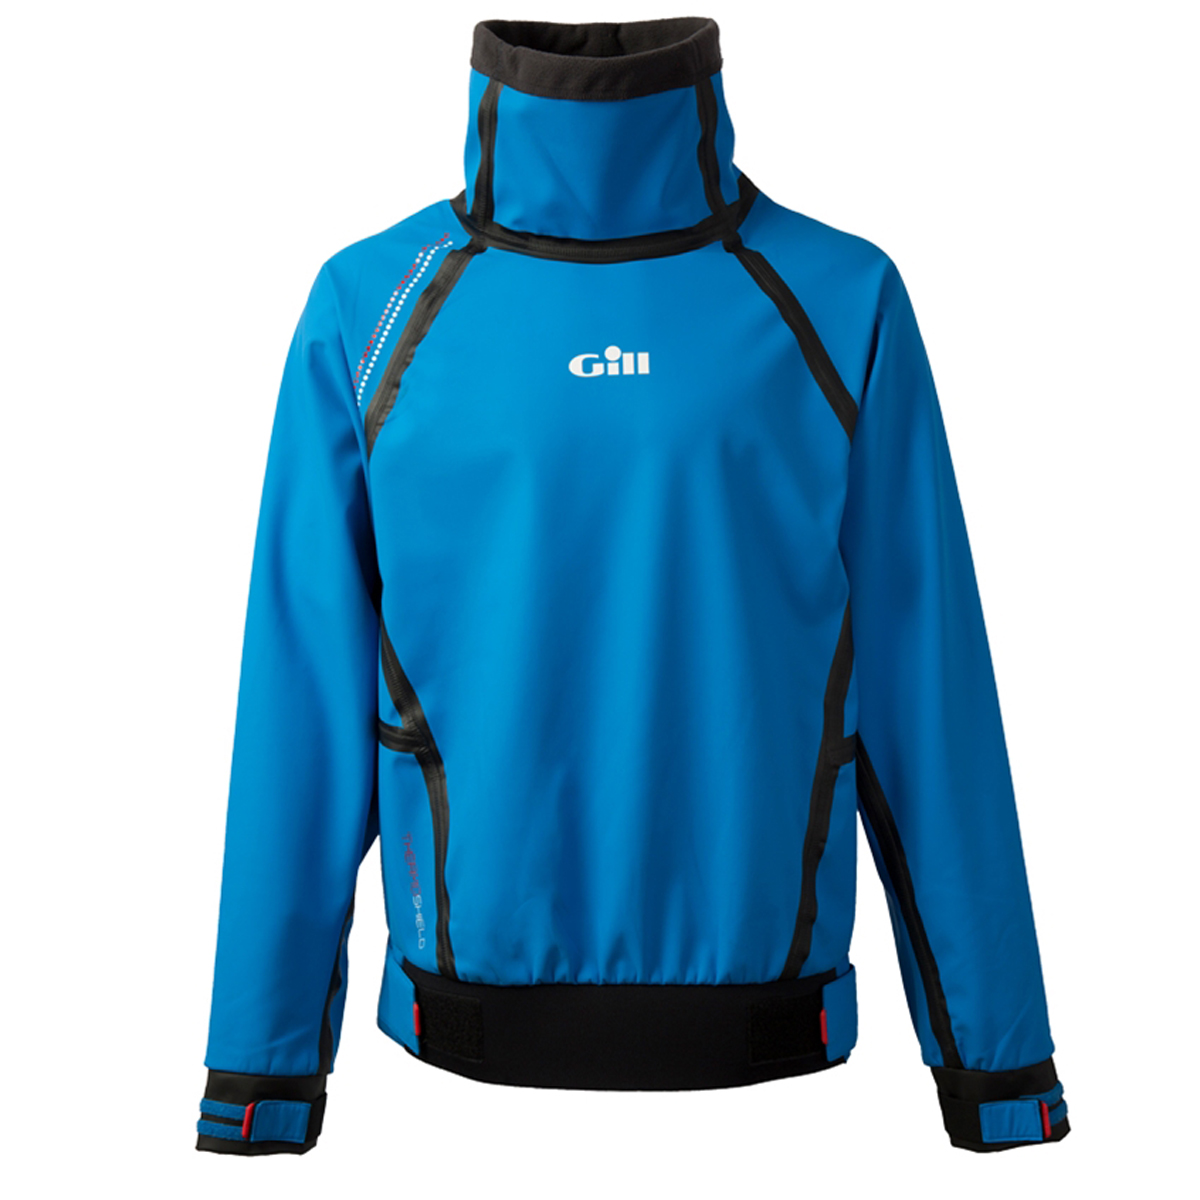 Gill Thermoshield Top (4367)